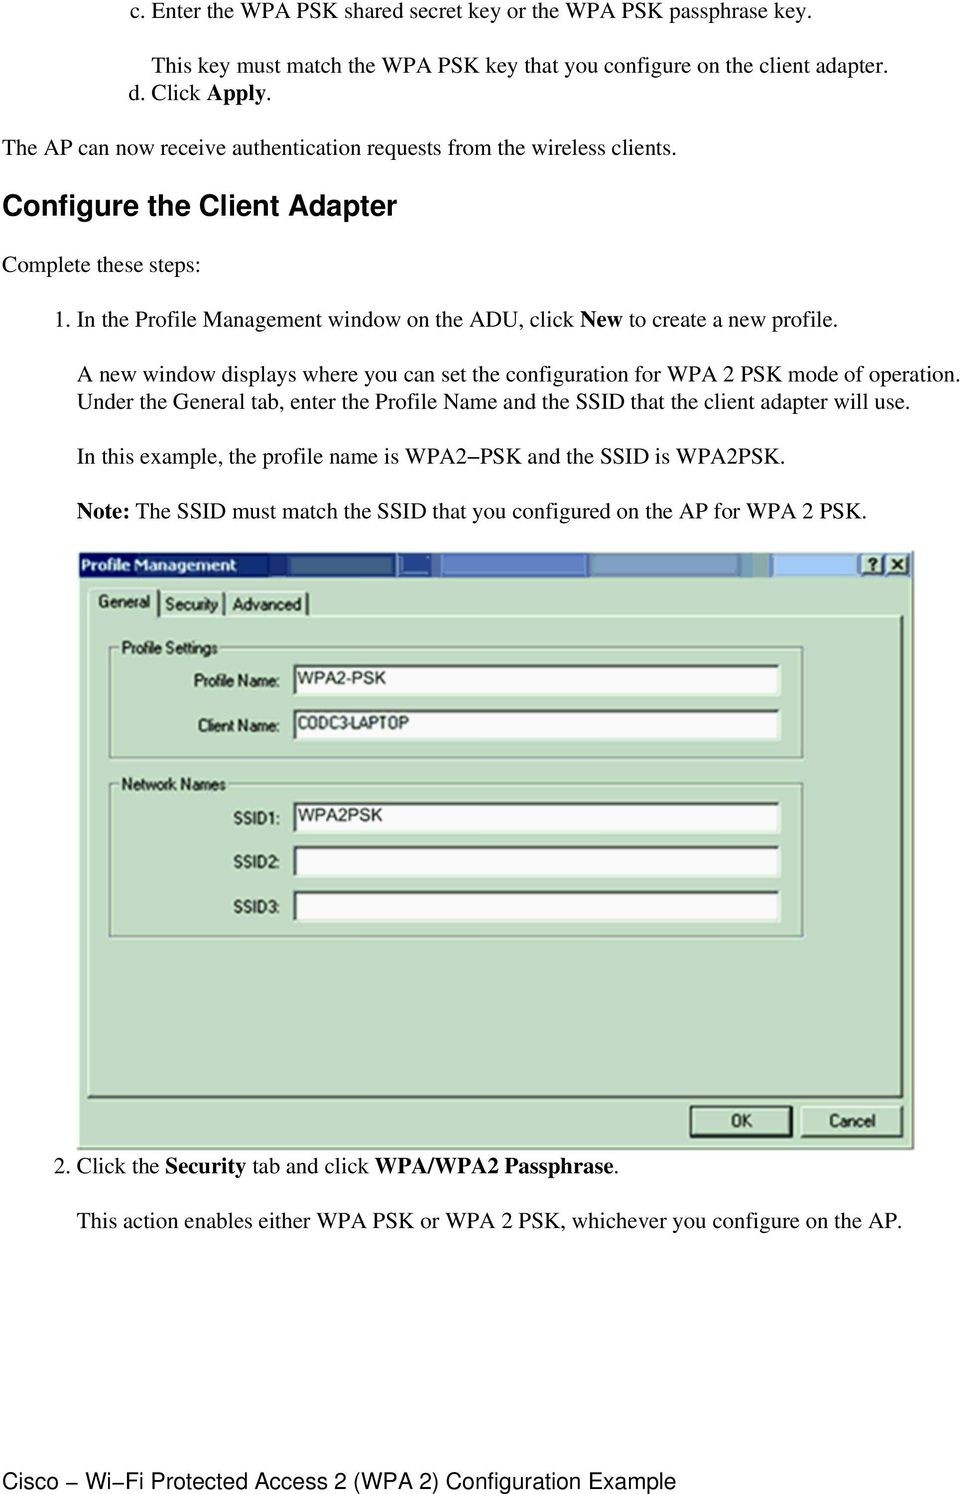 In the Profile Management window on the ADU, click New to create a new profile. A new window displays where you can set the configuration for WPA 2 PSK mode of operation.